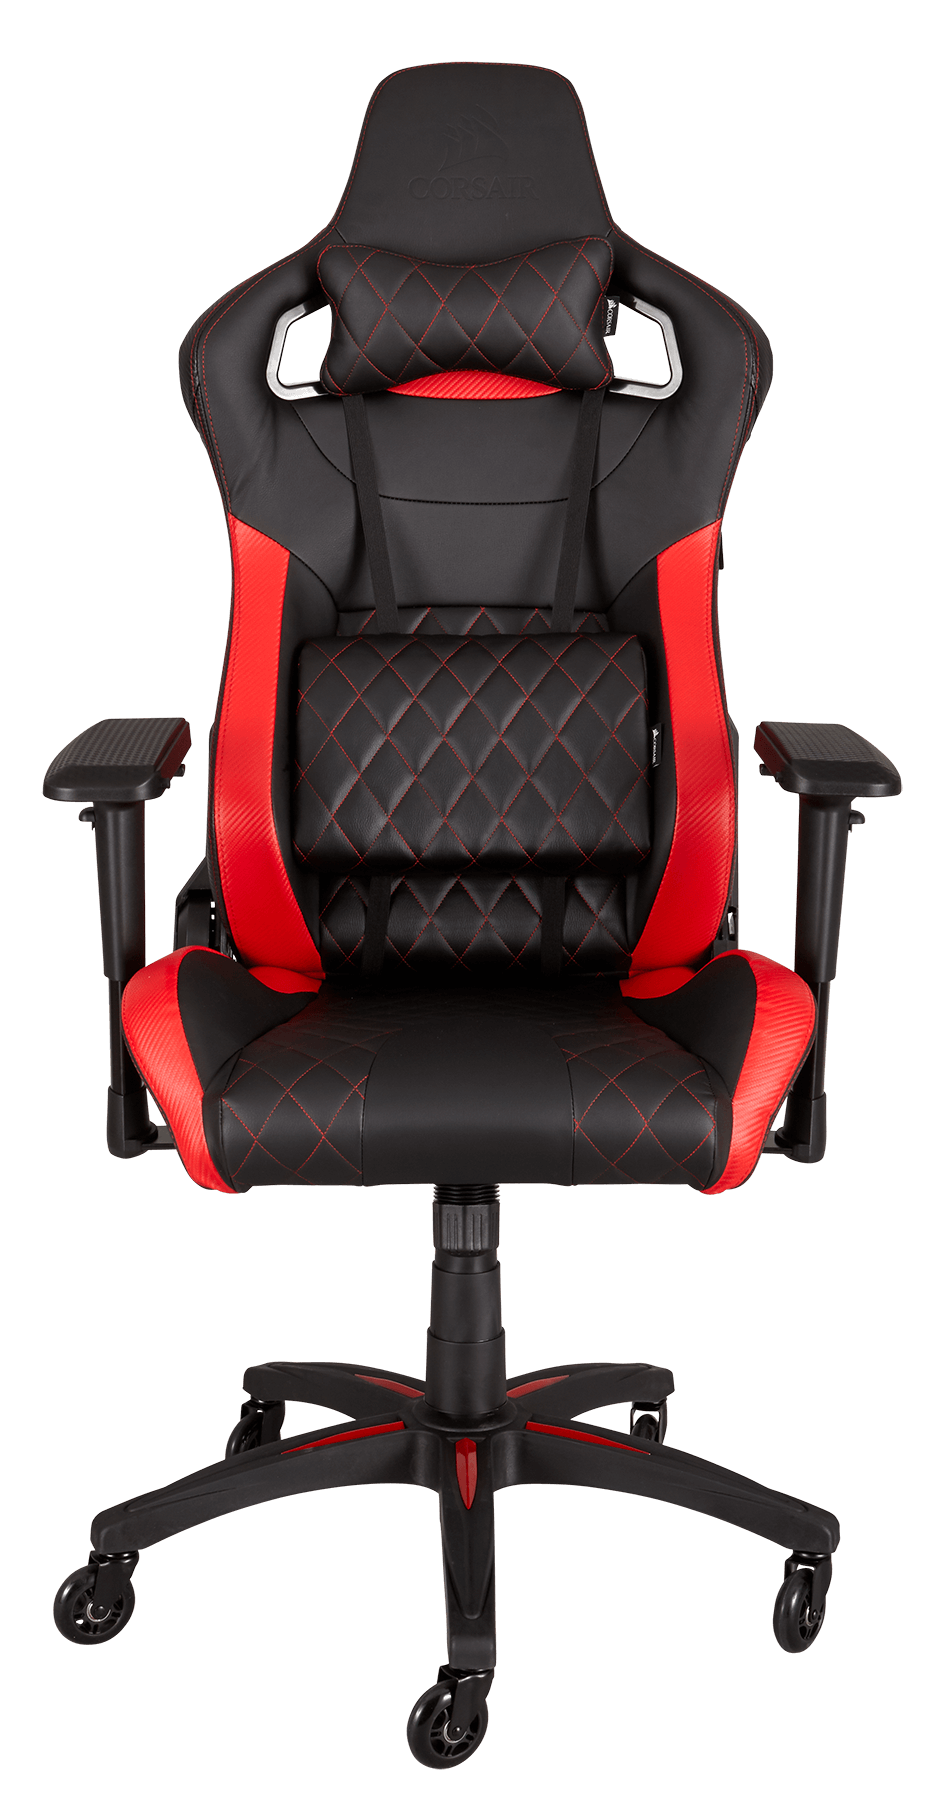 The CORSAIR T1 RACE delivers racing inspired design and